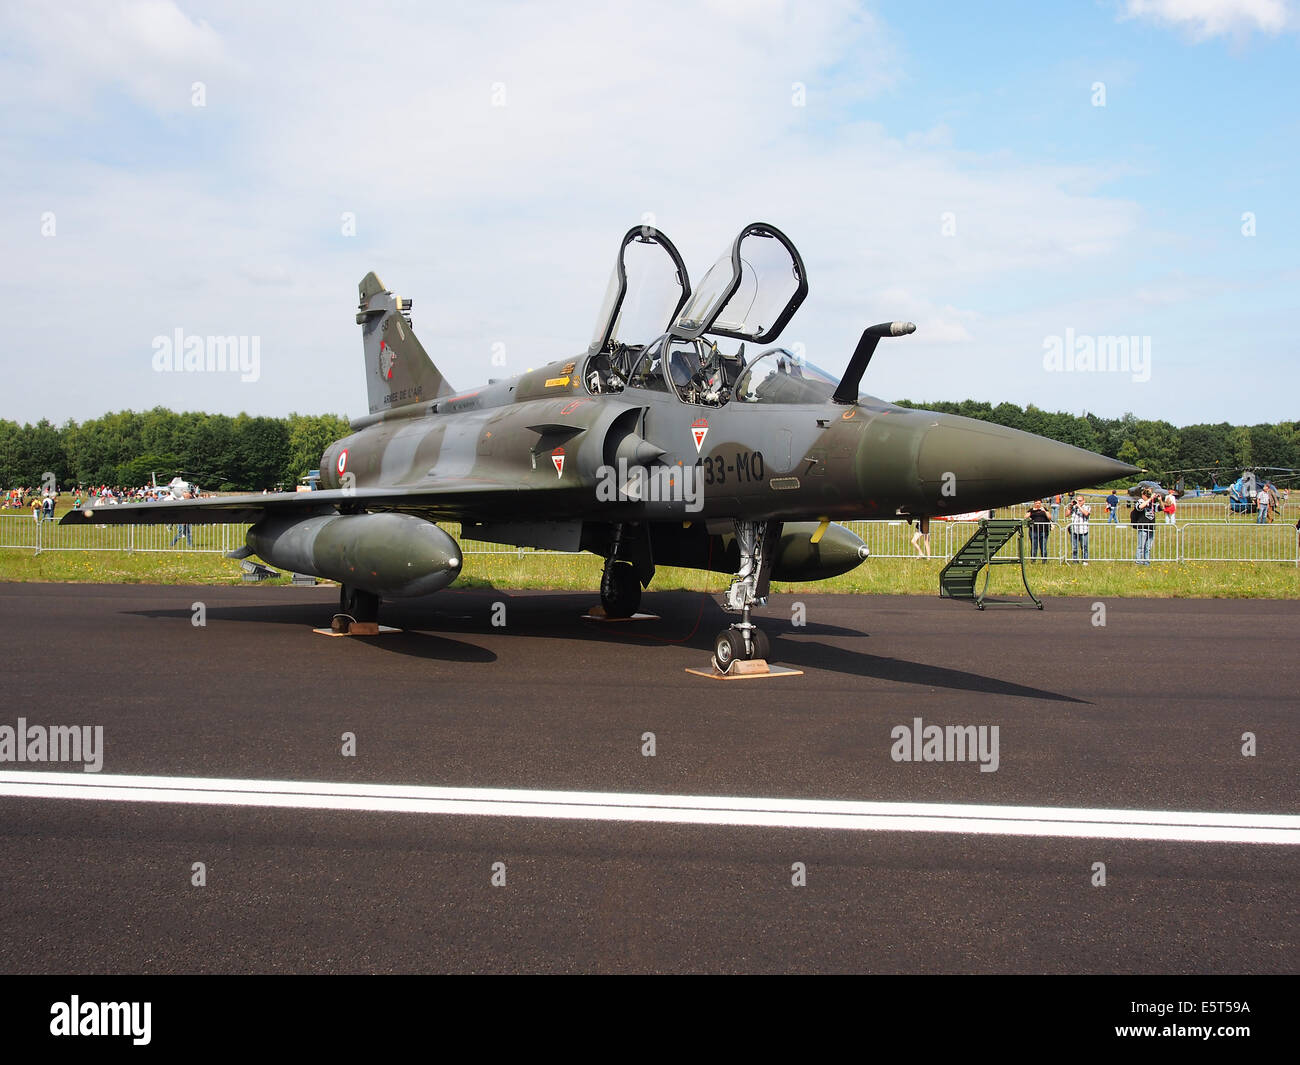 Greece Air Force Dassault Mirage 2000D 613 133-MO (cn 410), pic1 - Stock Image